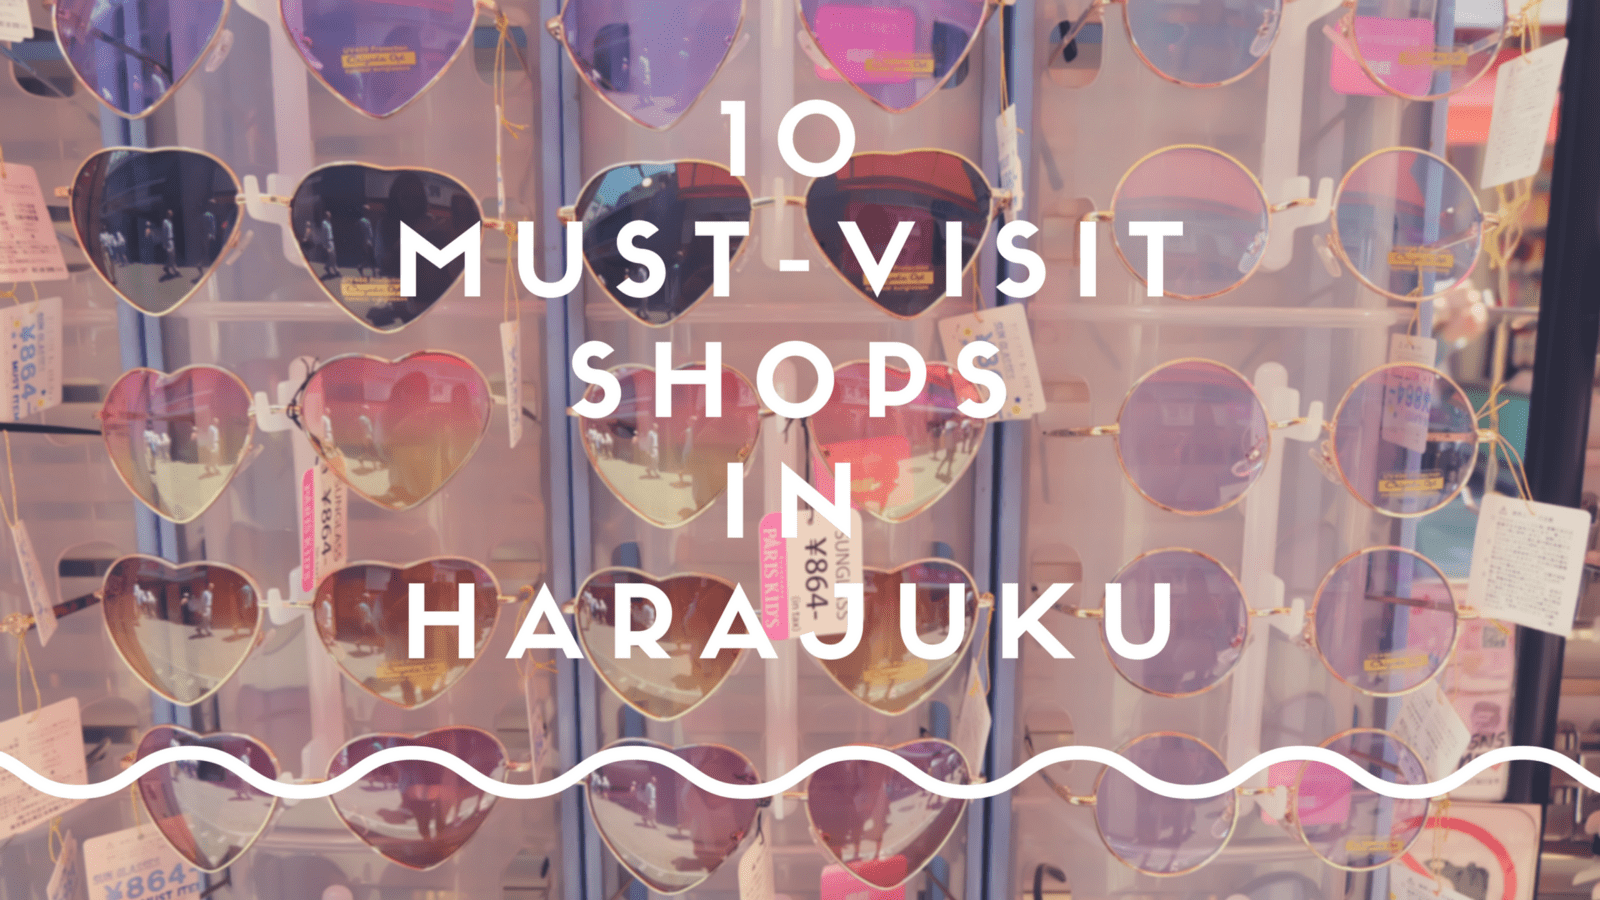 Must-Visit Shops in Harajuku